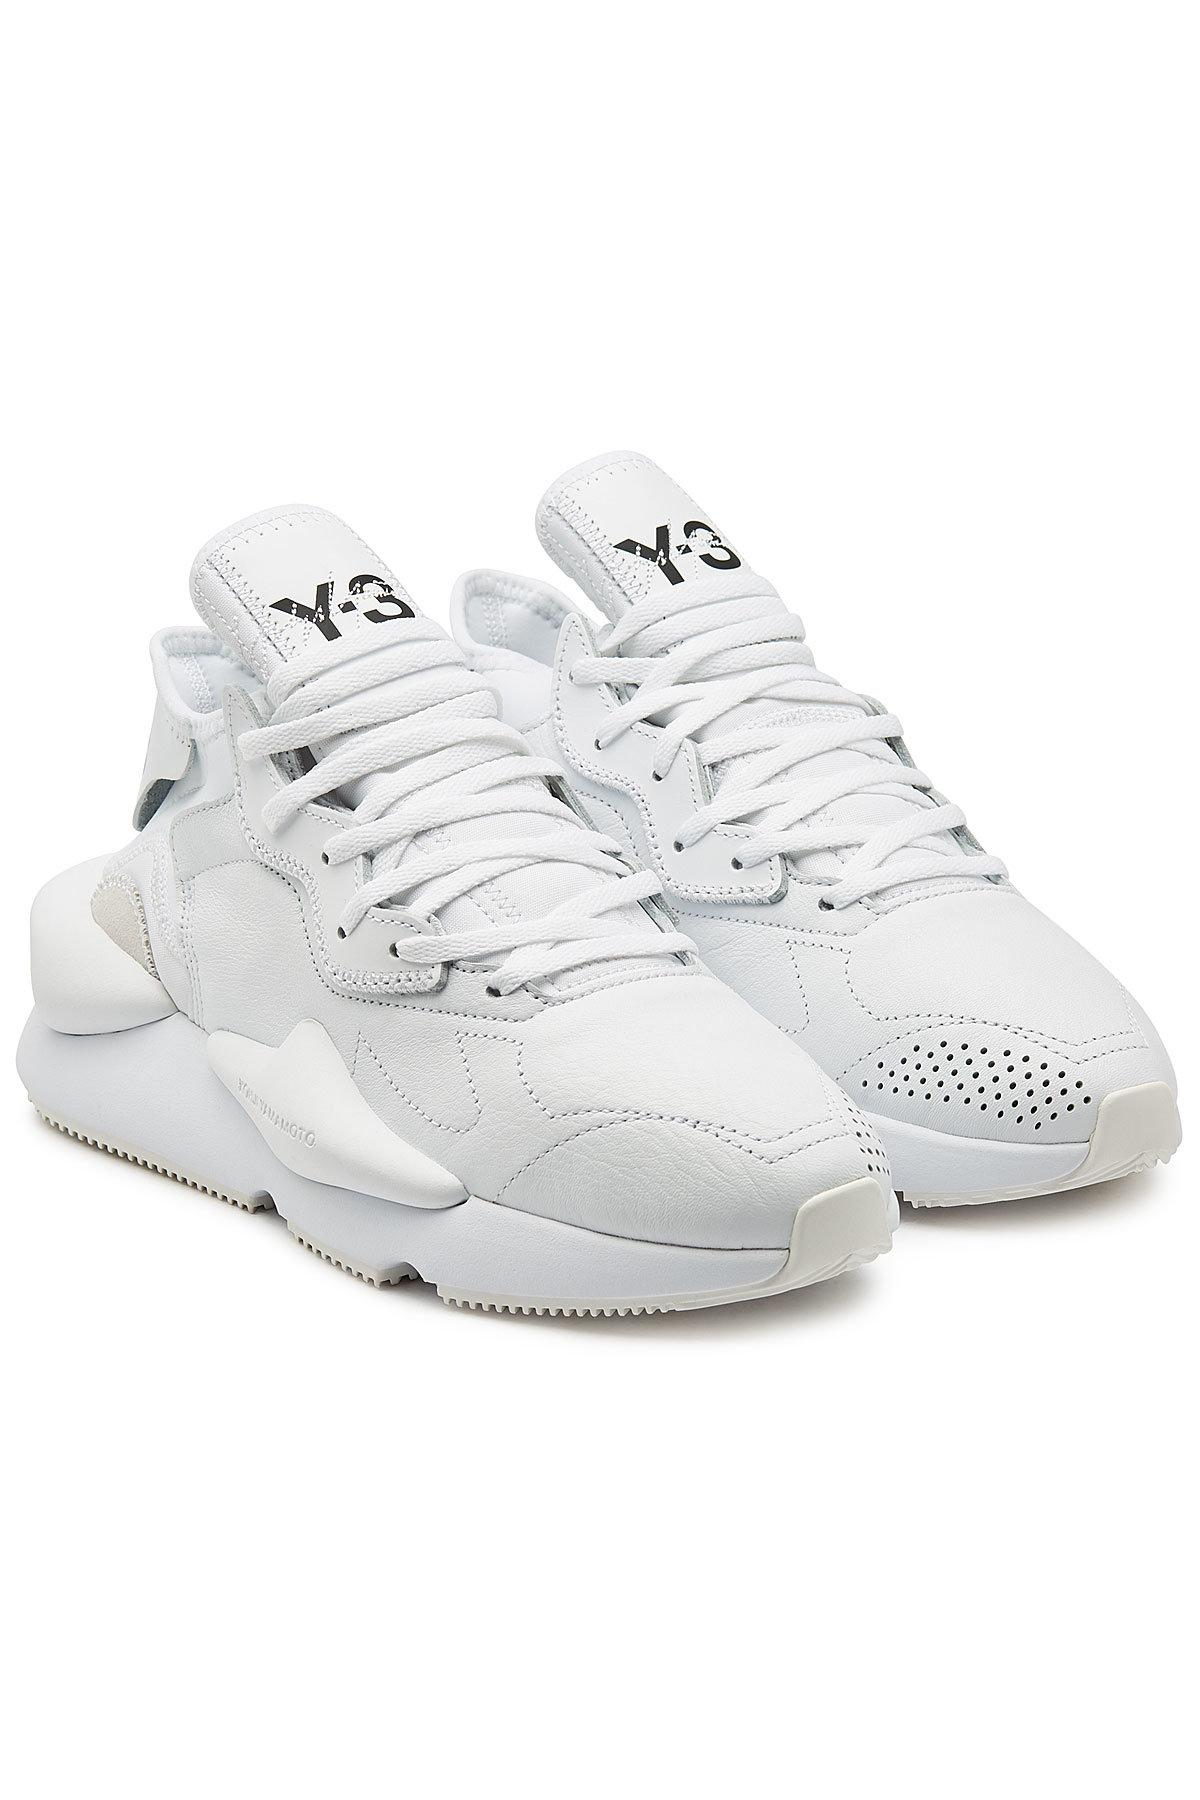 0d582b25f56fe Lyst - Y-3 Kaiwa Leather Sneakers in White for Men